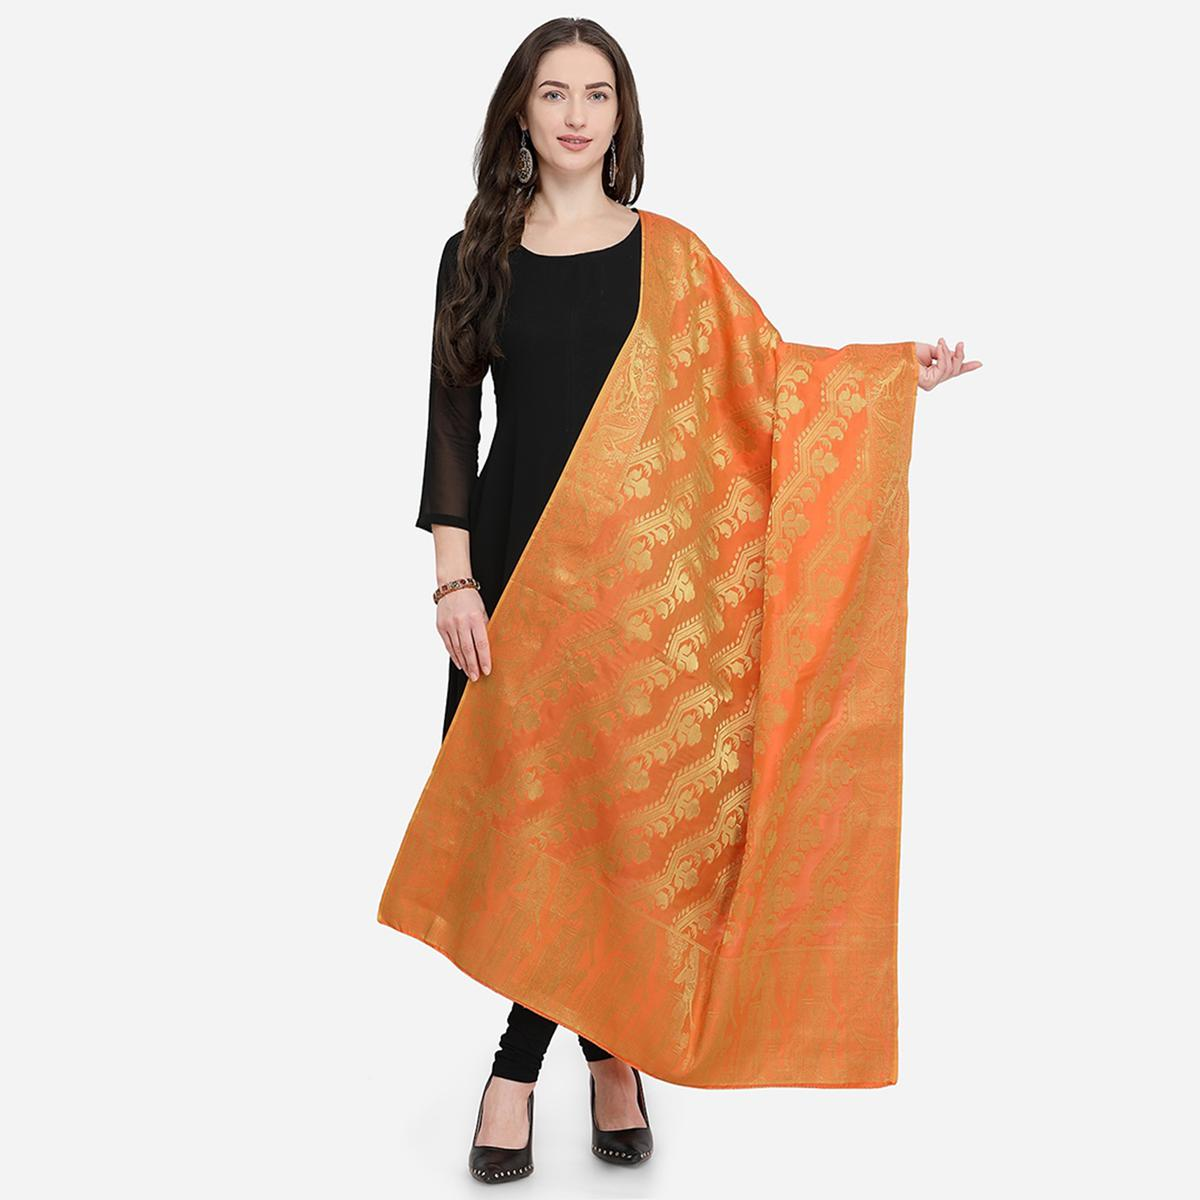 Flattering Orange Colored Festive Wear Jacquard Banarasi Silk Dupatta